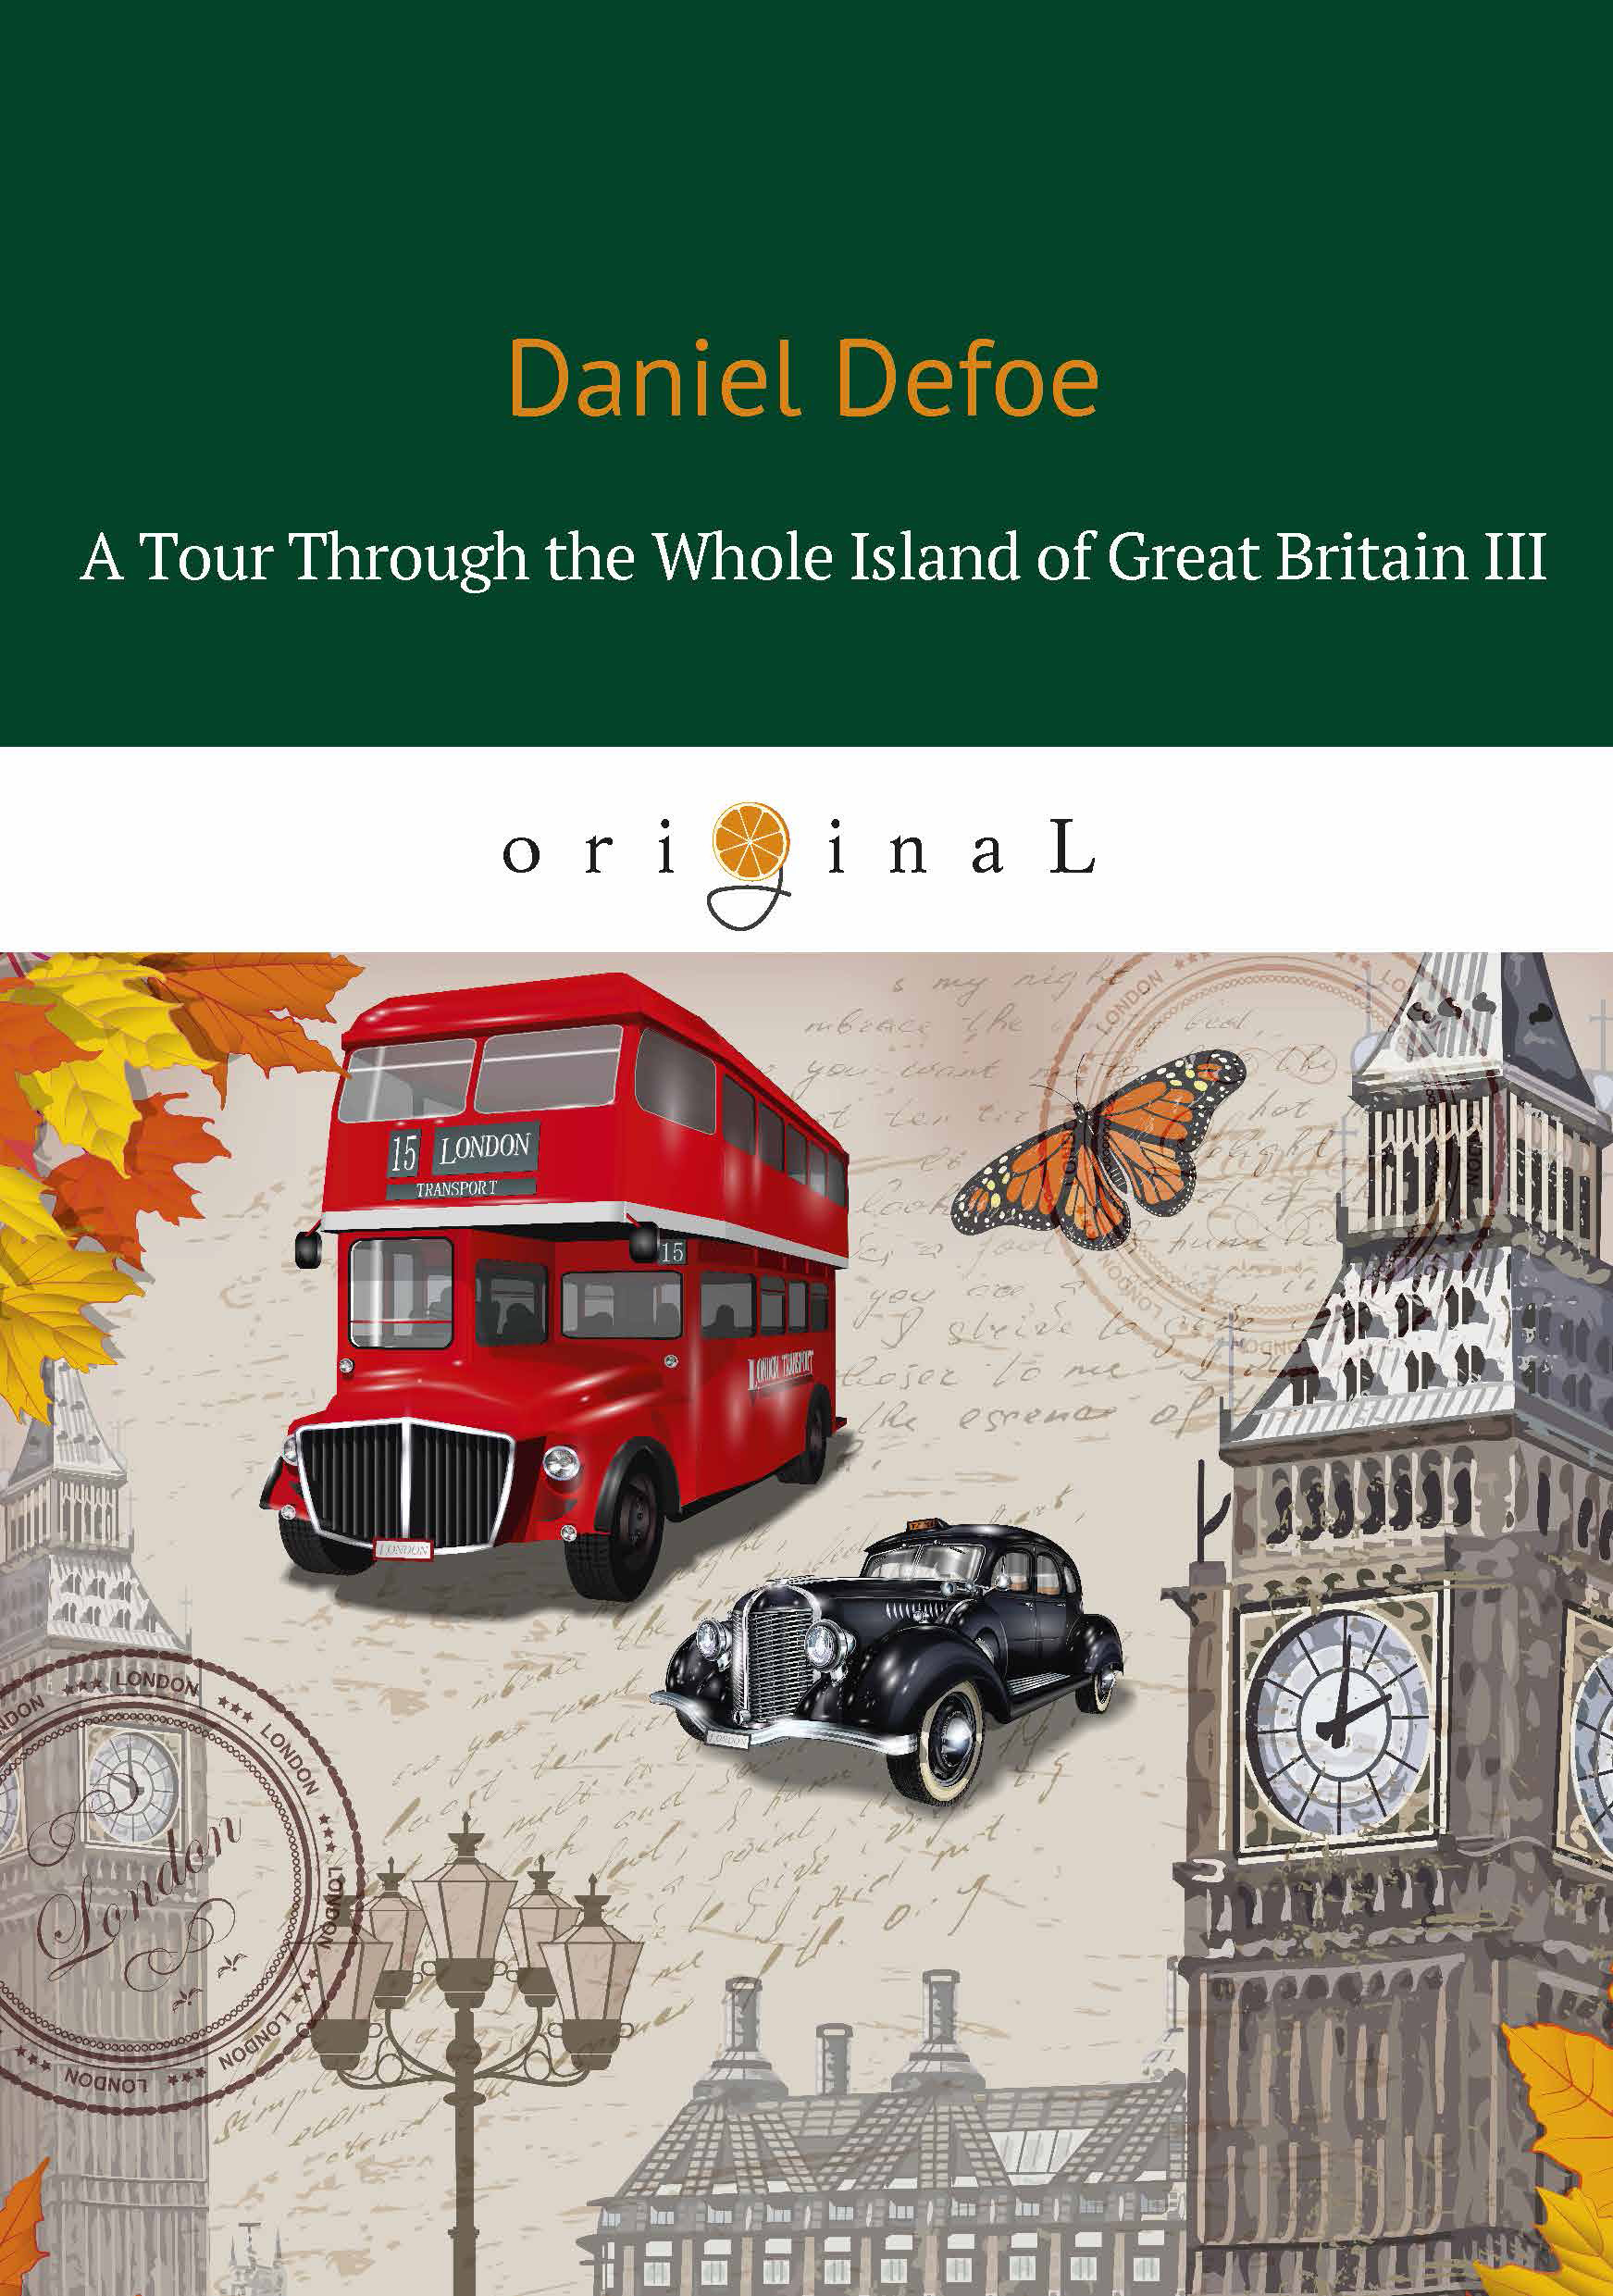 Даниэль Дефо A Tour Through the Whole Island of Great Britain III defoe d a tour through the whole island of great britain i тур через великобританию 1 на англ яз